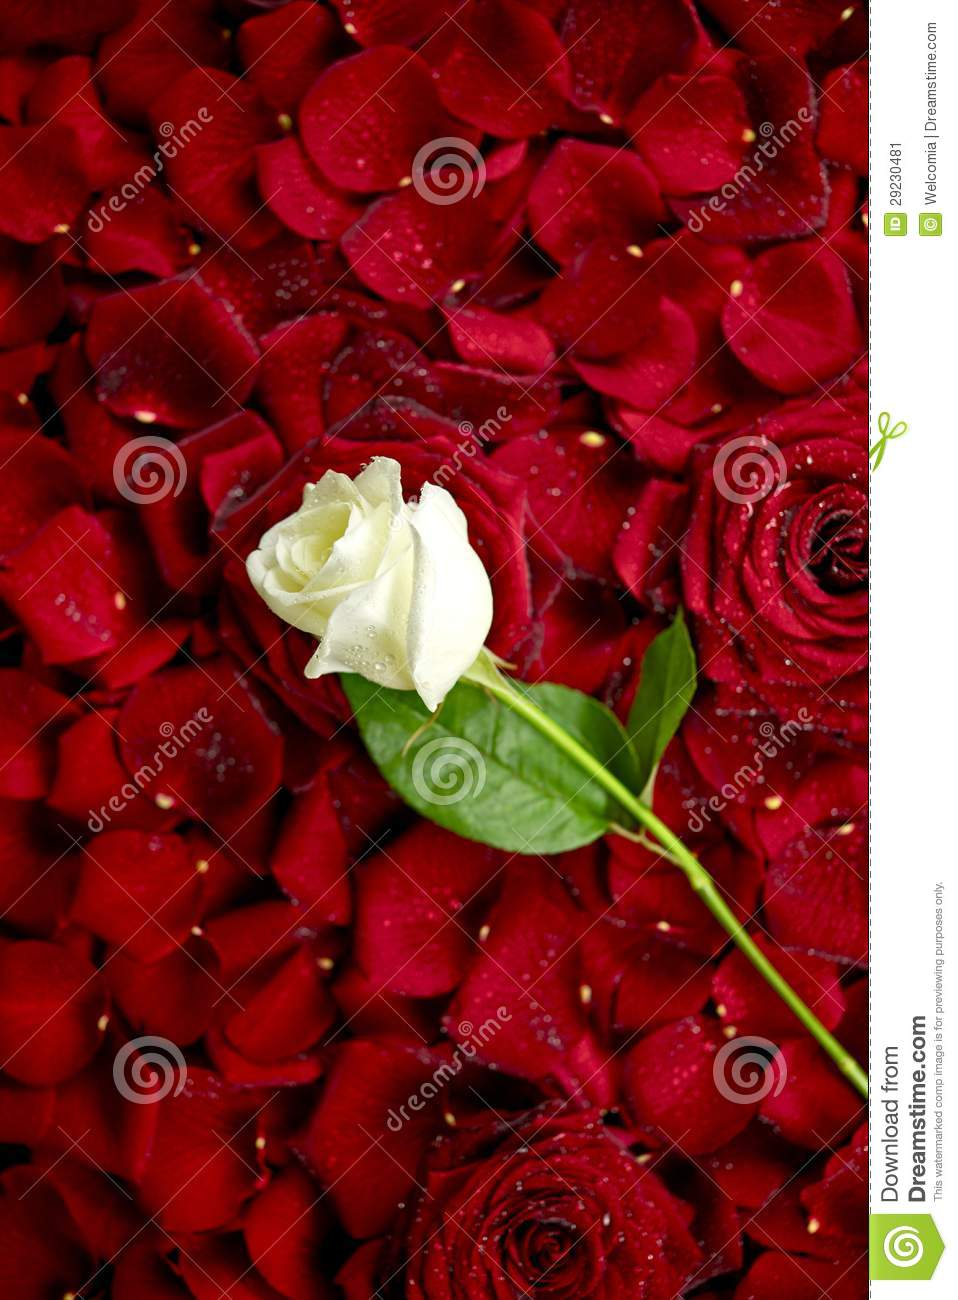 White rose on red rose petals valentine s day theme roses background